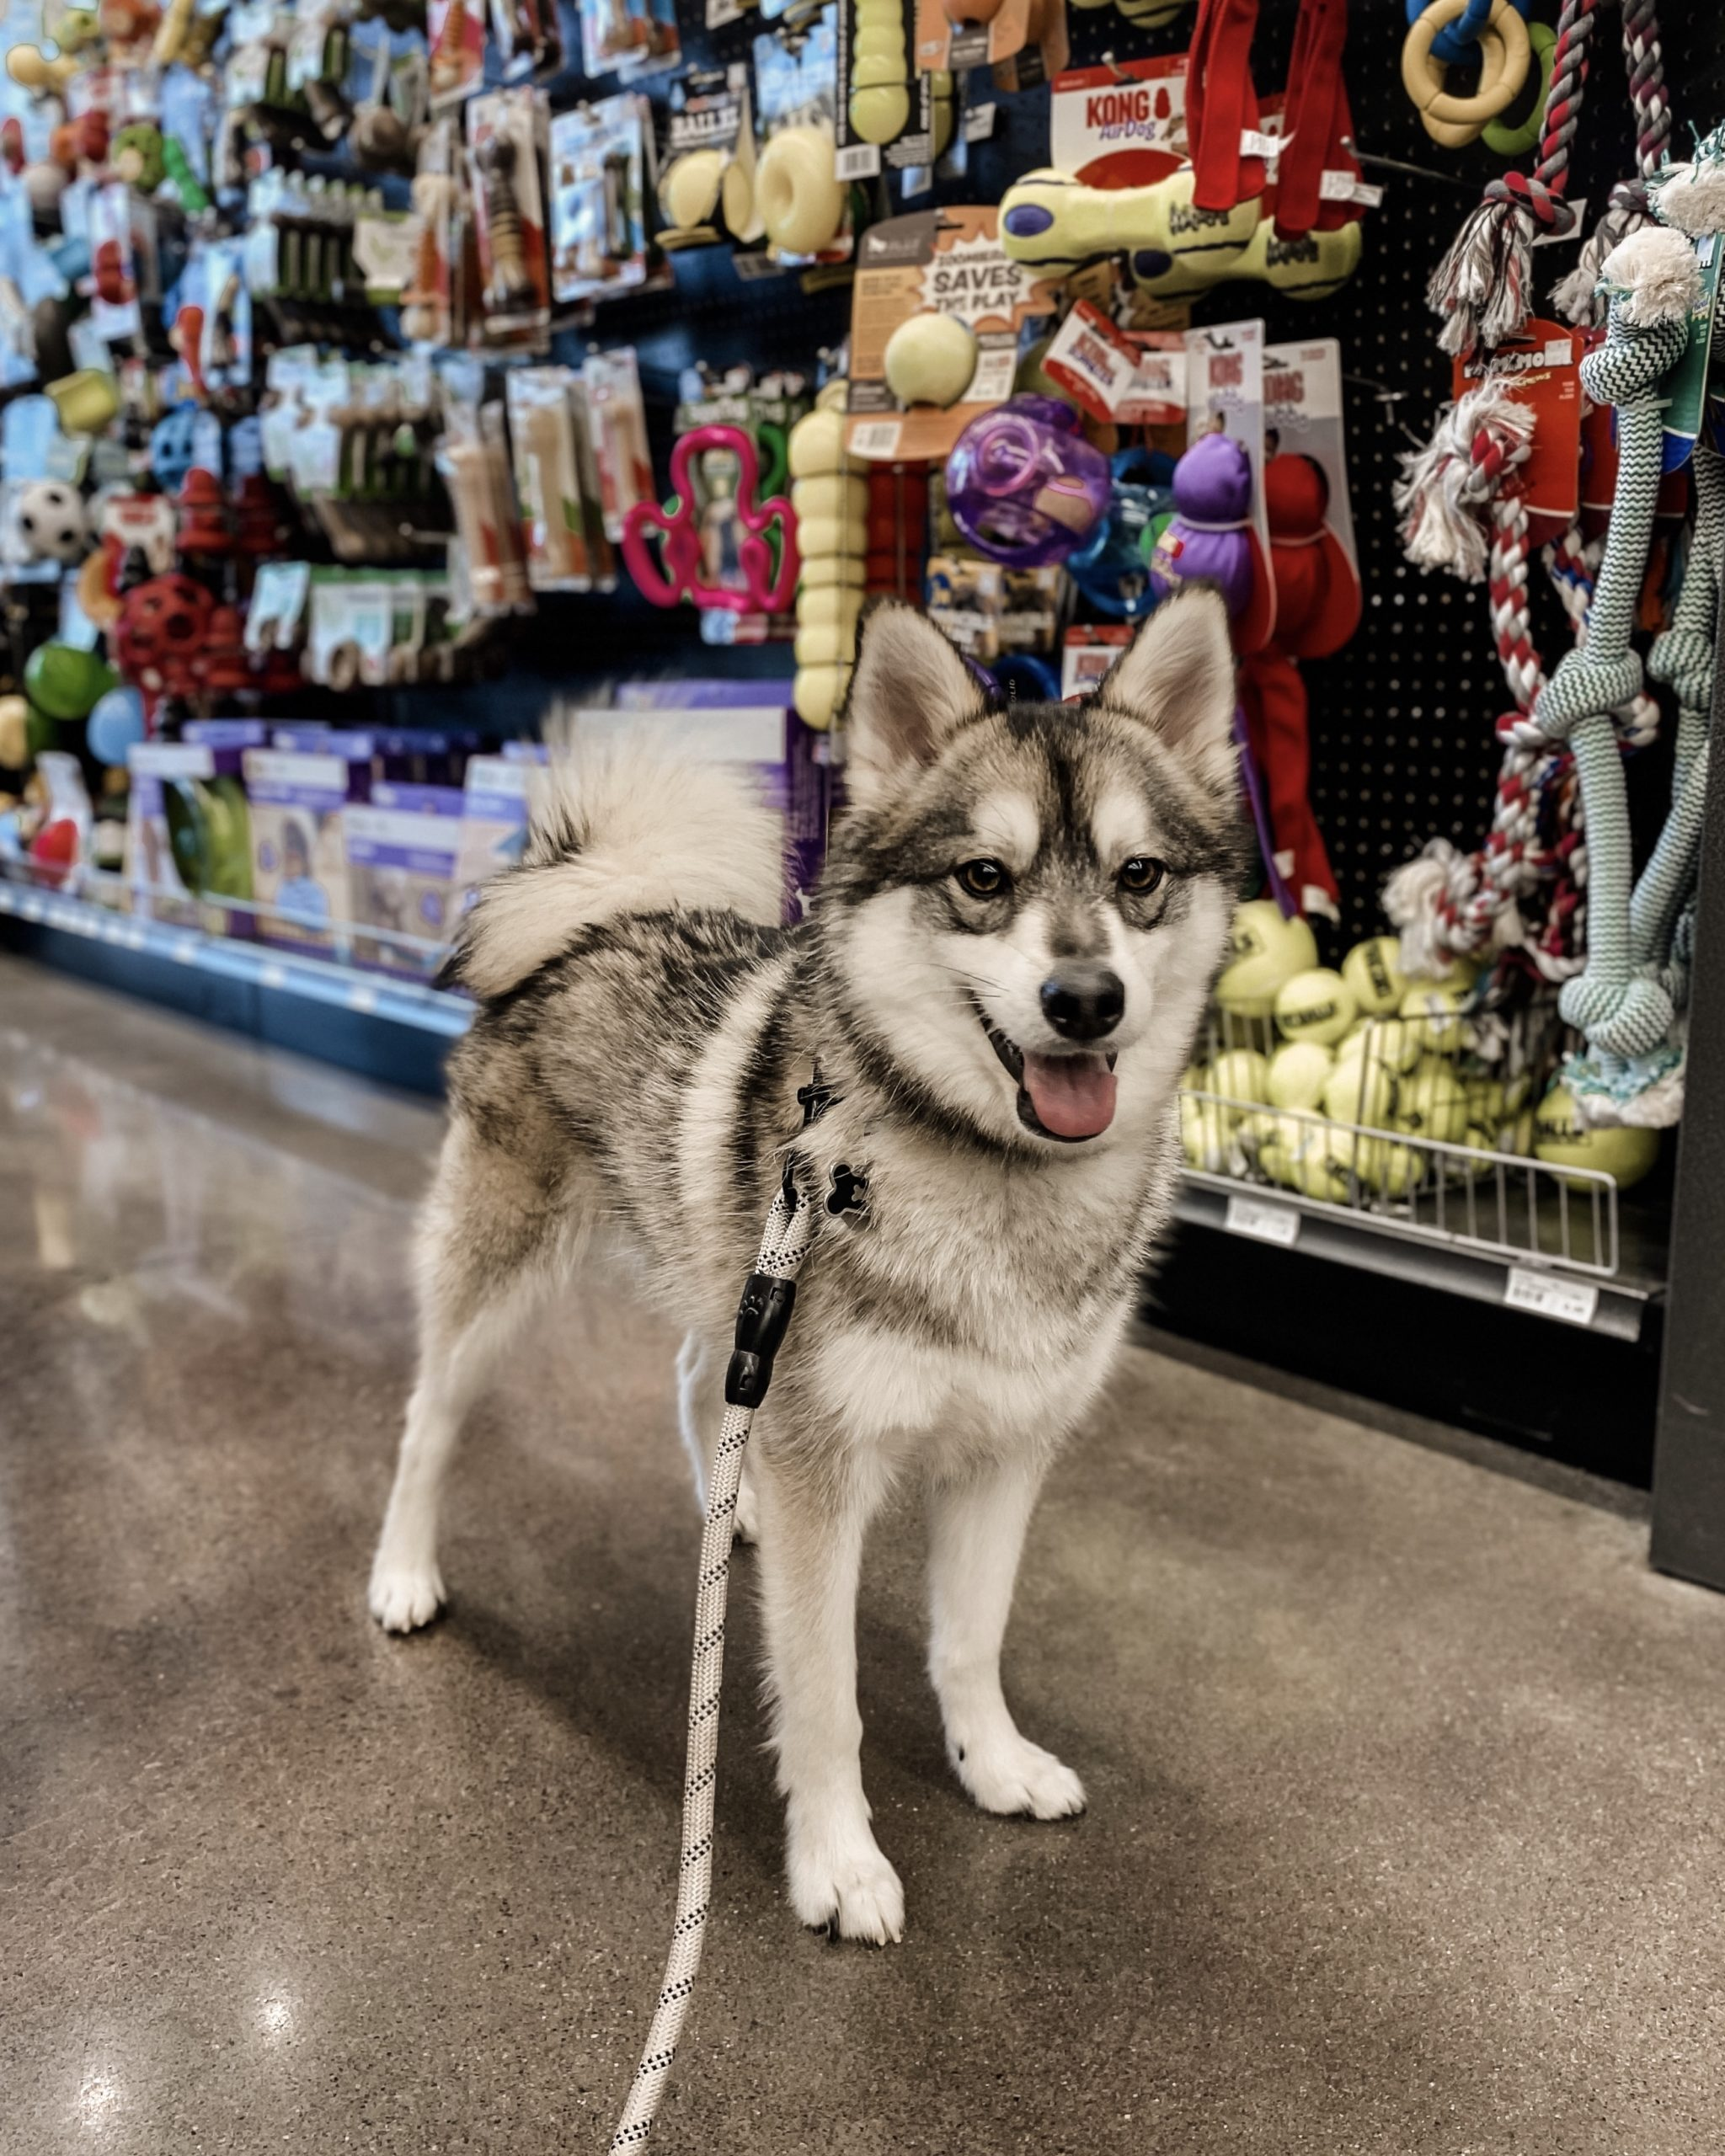 a dog standing in front of a toy aisle